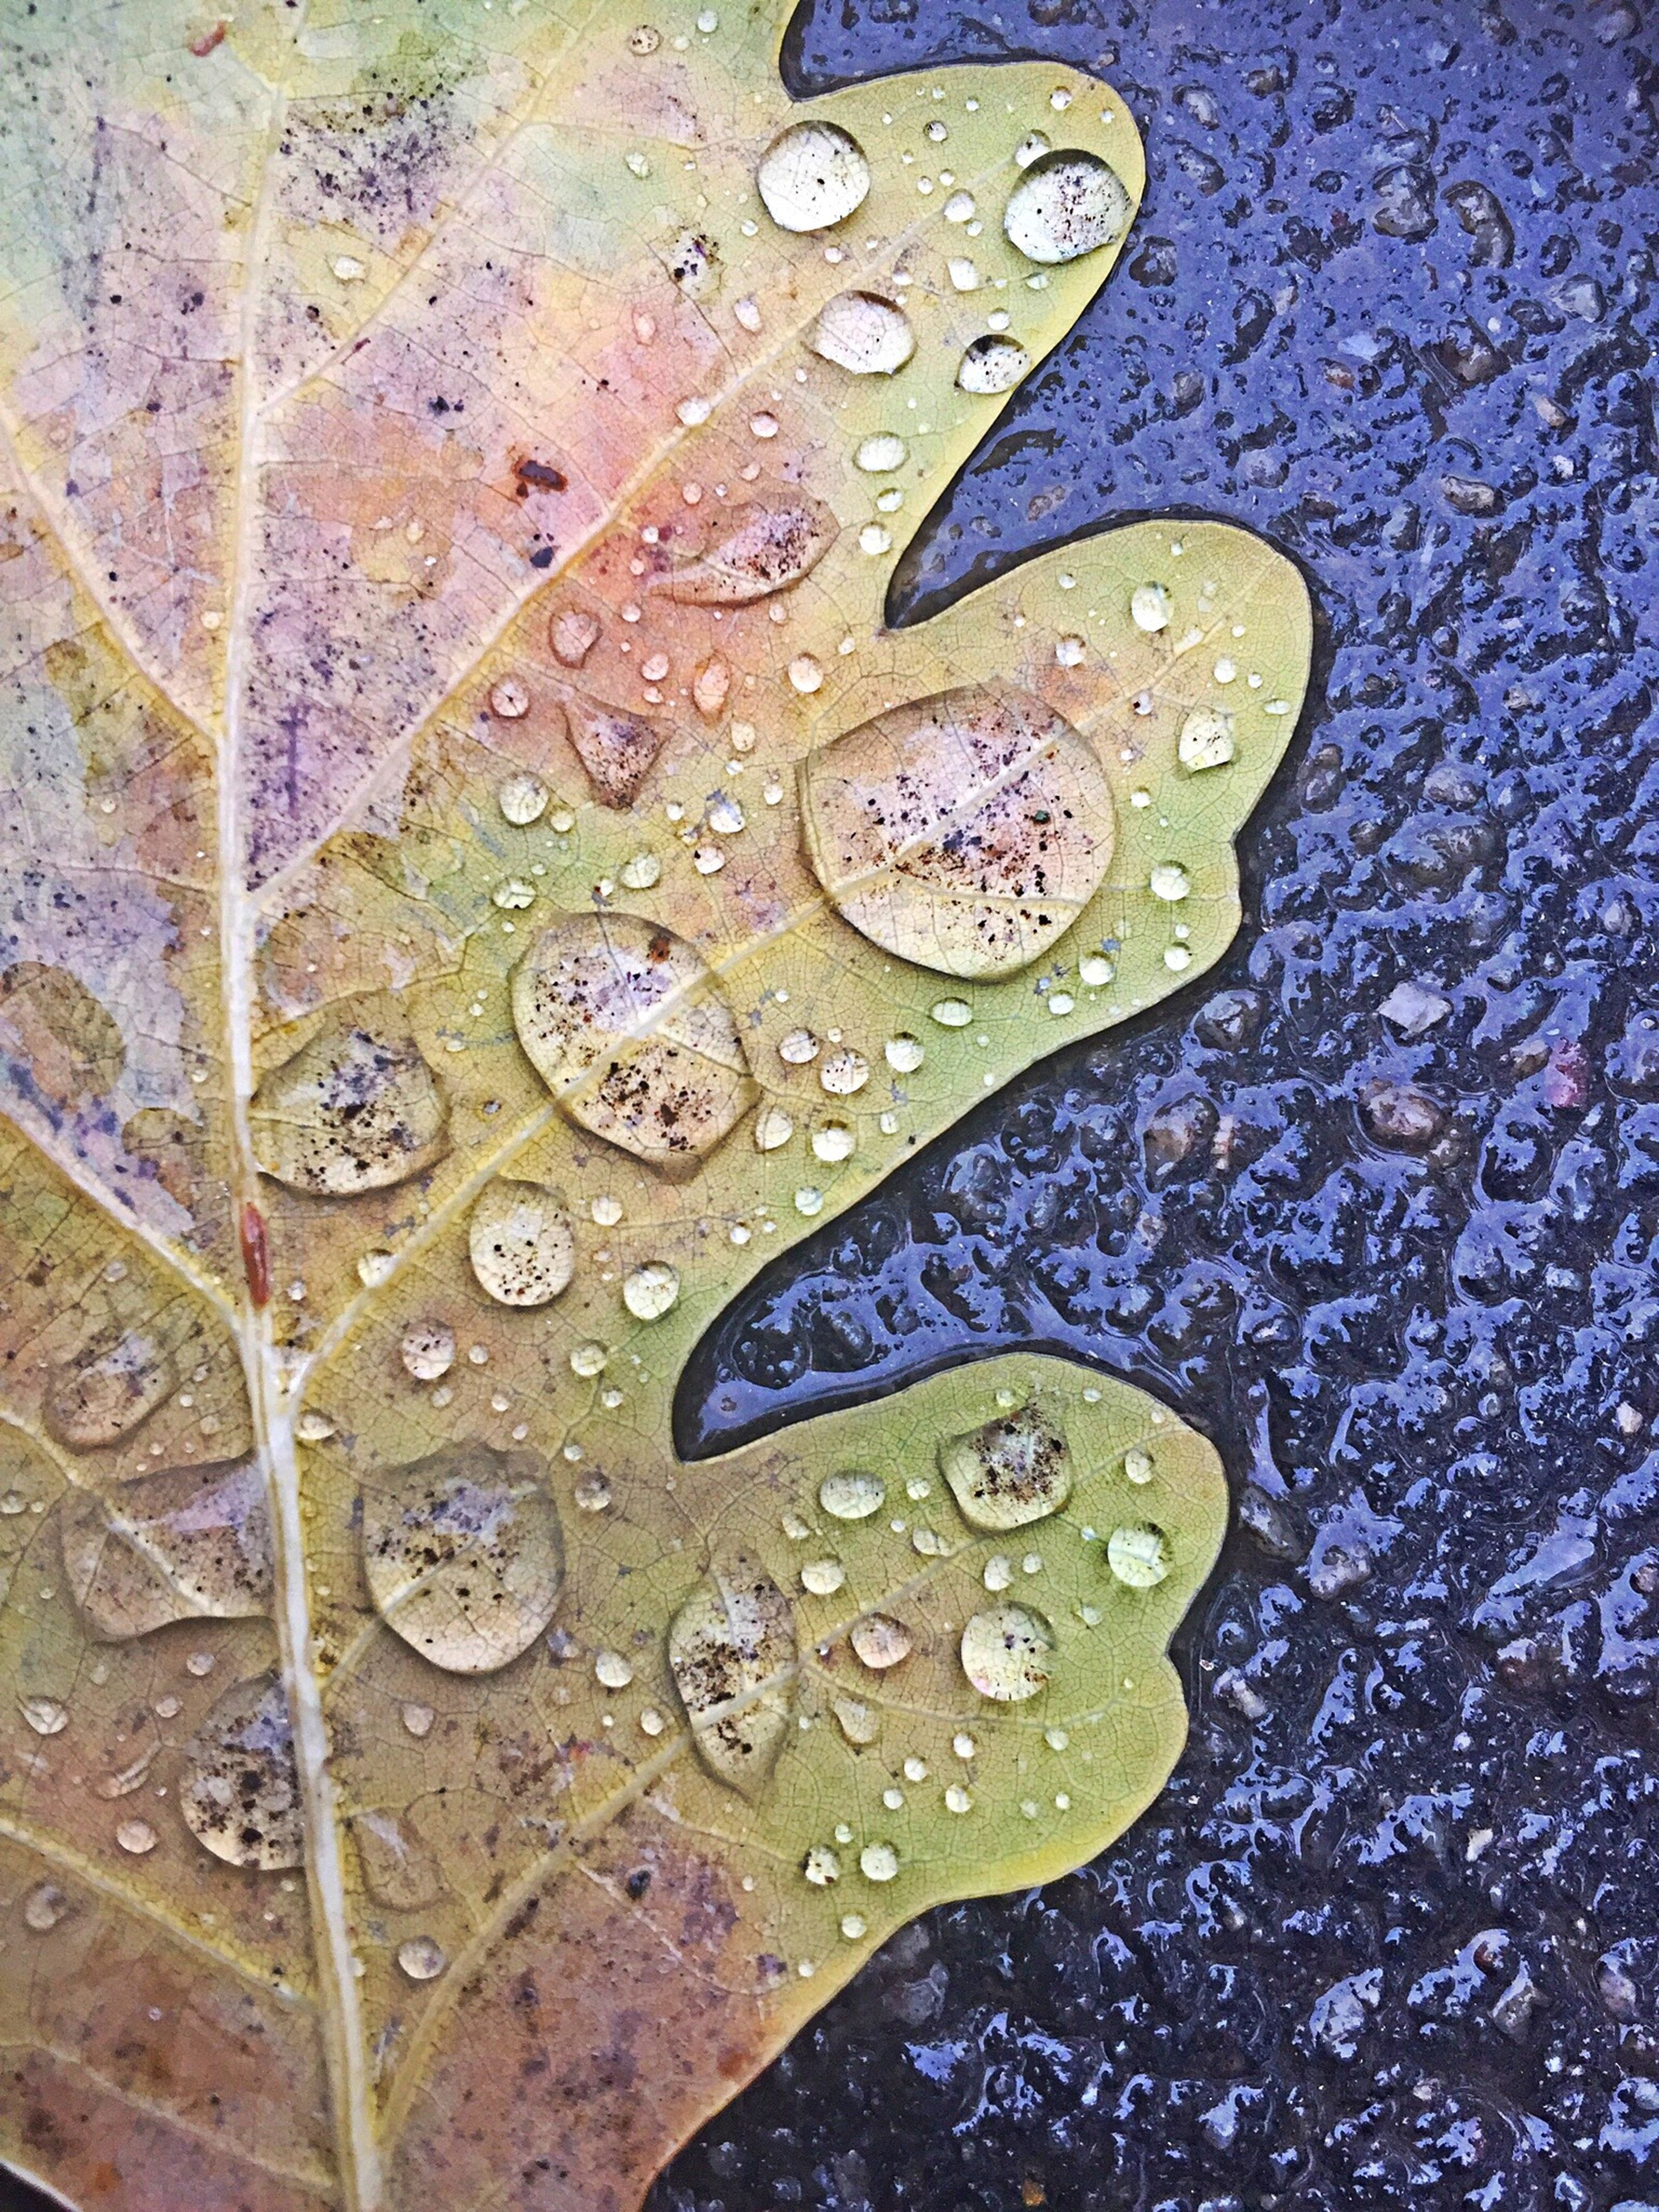 drop, leaf, water, wet, season, close-up, natural pattern, autumn, leaf vein, dry, change, pattern, fragility, dew, nature, selective focus, day, droplet, yellow, beauty in nature, fallen leaf, tranquility, outdoors, purity, botany, full frame, natural condition, waterdrop, leaves